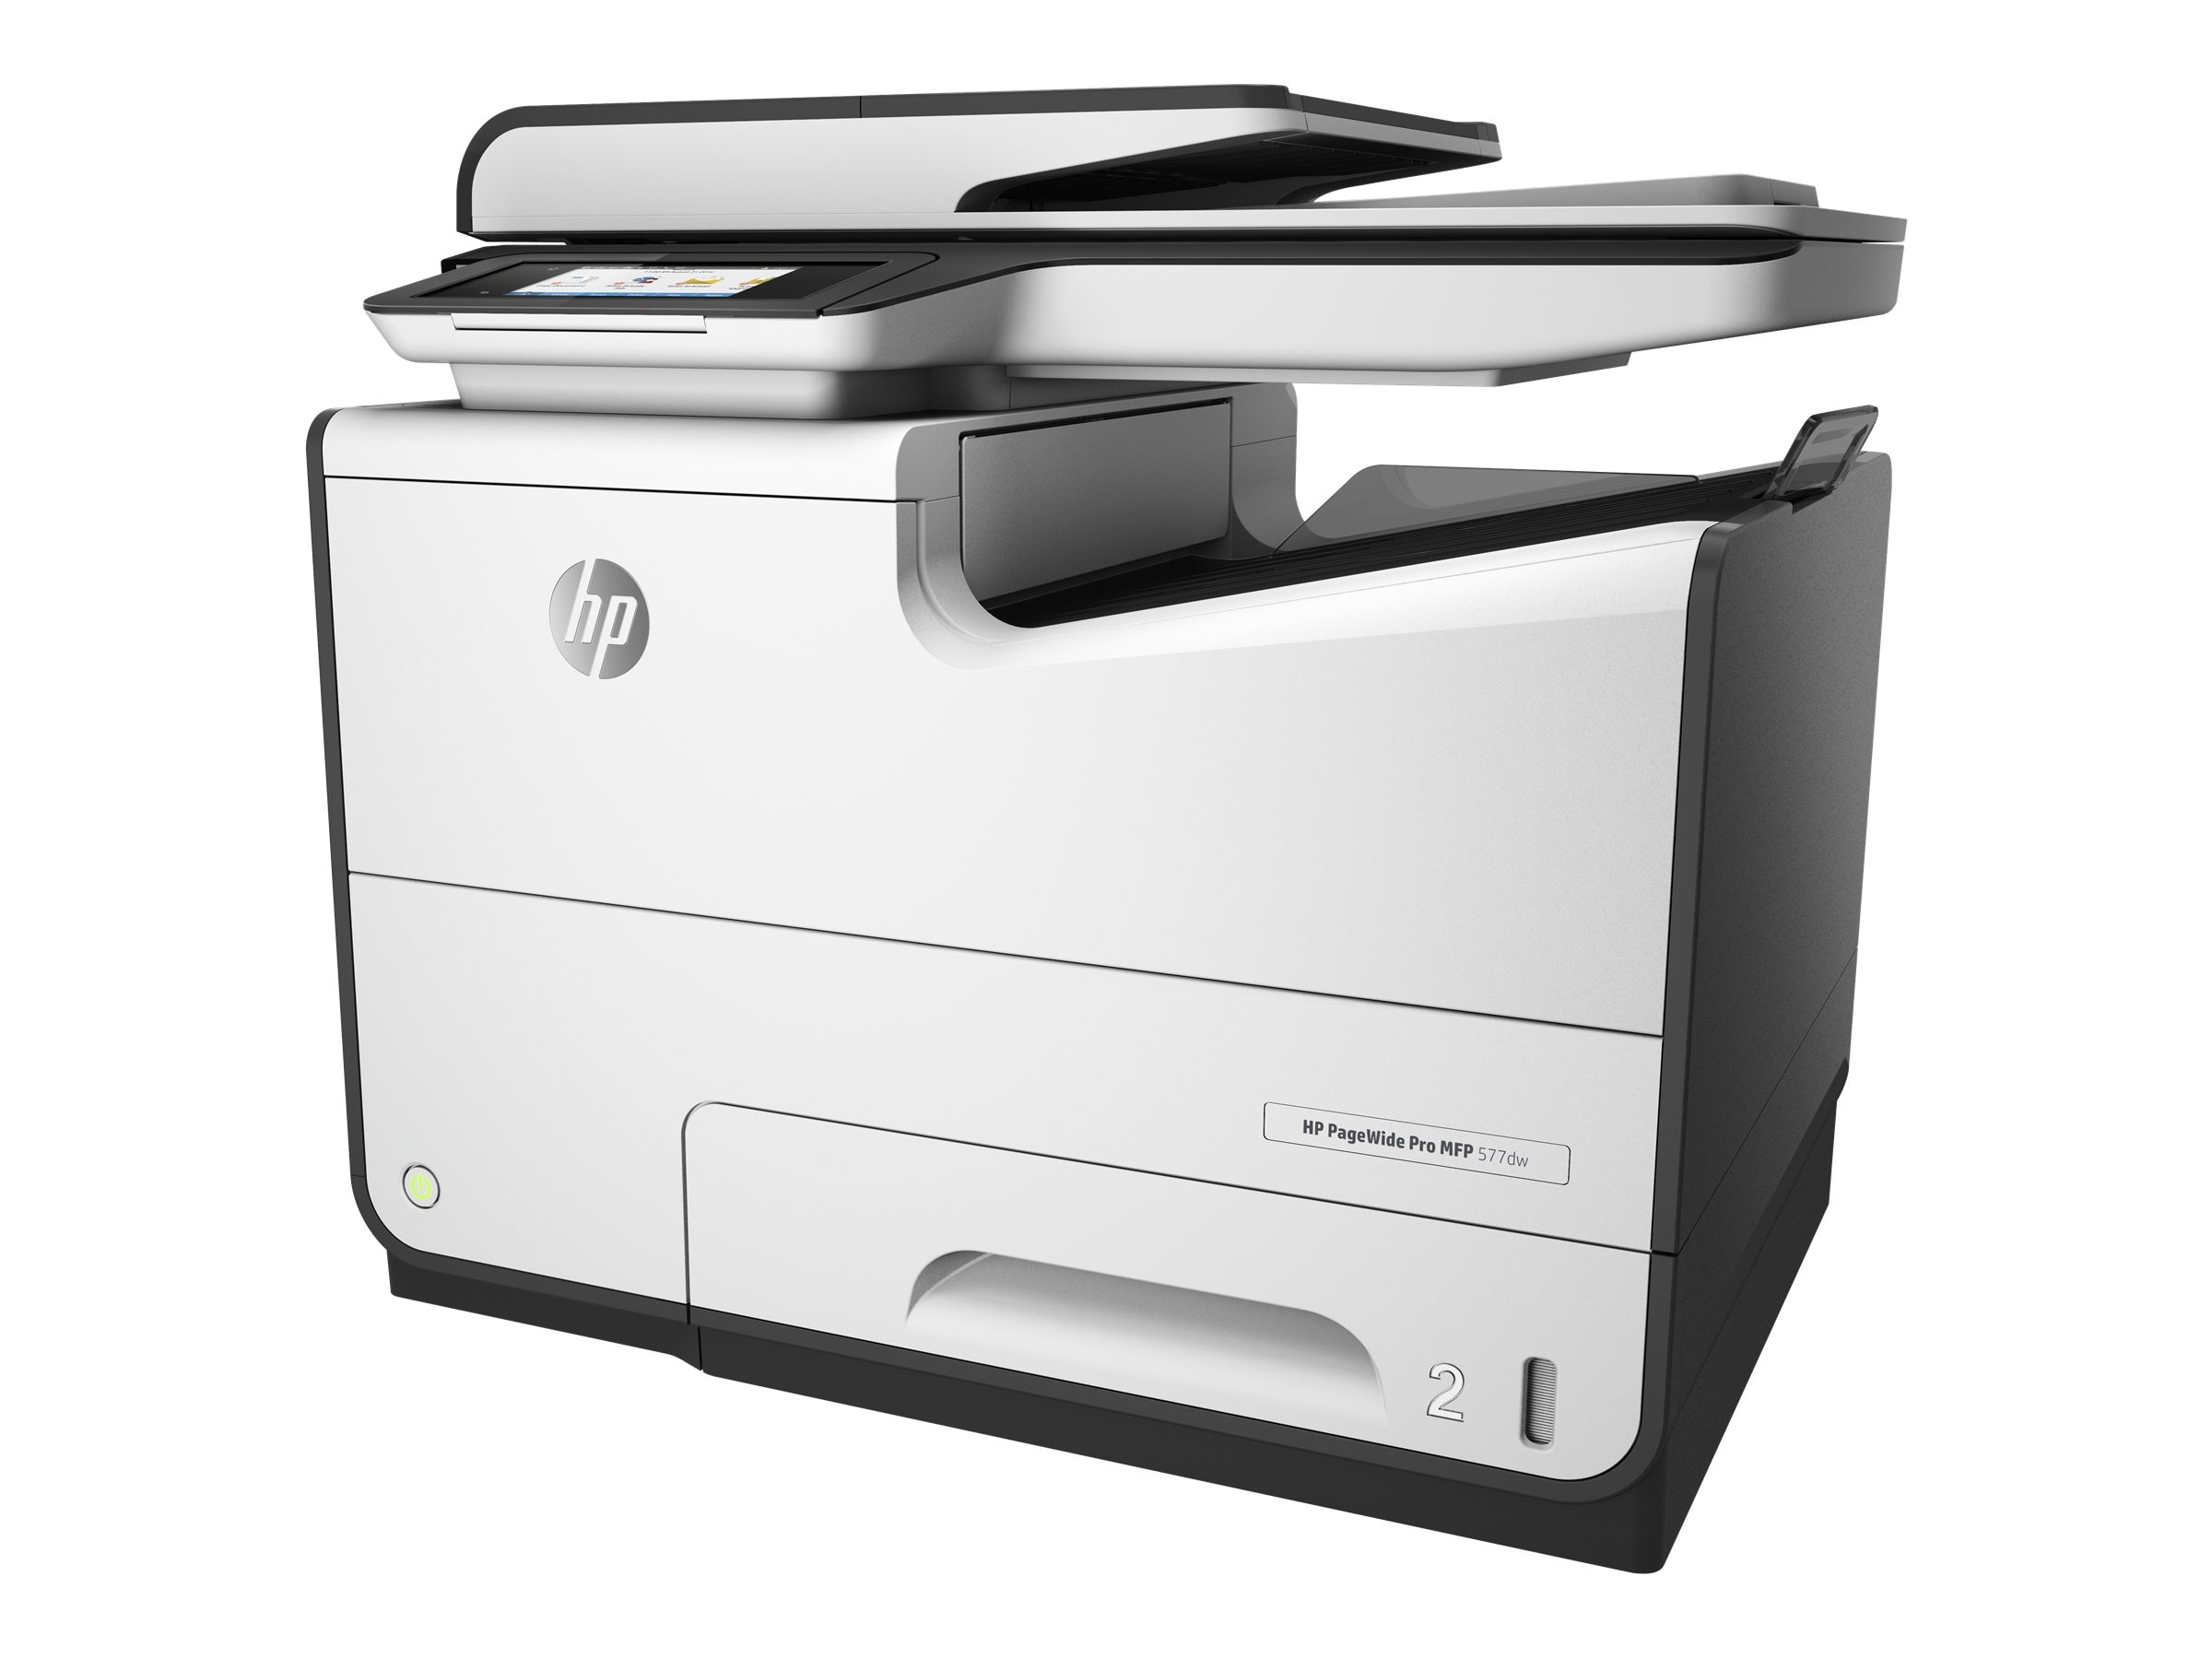 HP PageWide Pro 577dw Multifunction Printer, D3Q21A#B1H, 31807675, MultiFunction - Ink-Jet